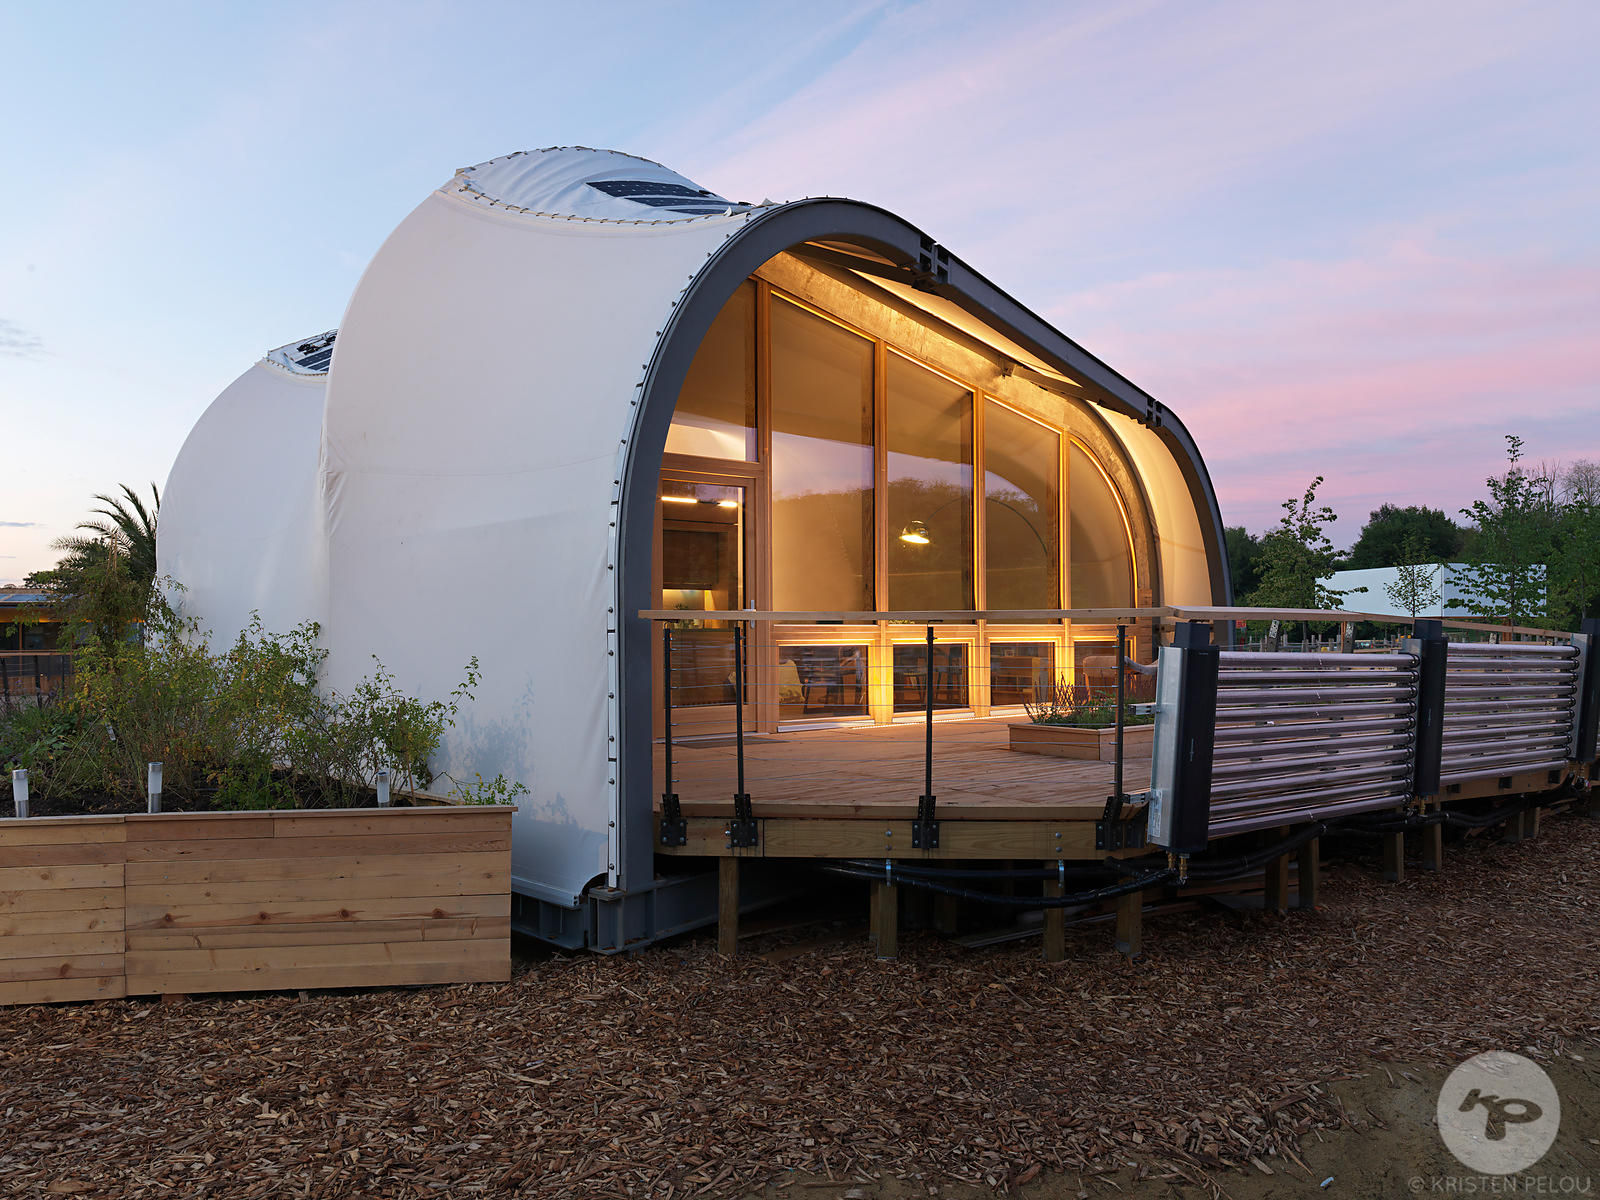 Architecture Photographer Paris - SOLAR DECATHLON 2014 VERSAILLES